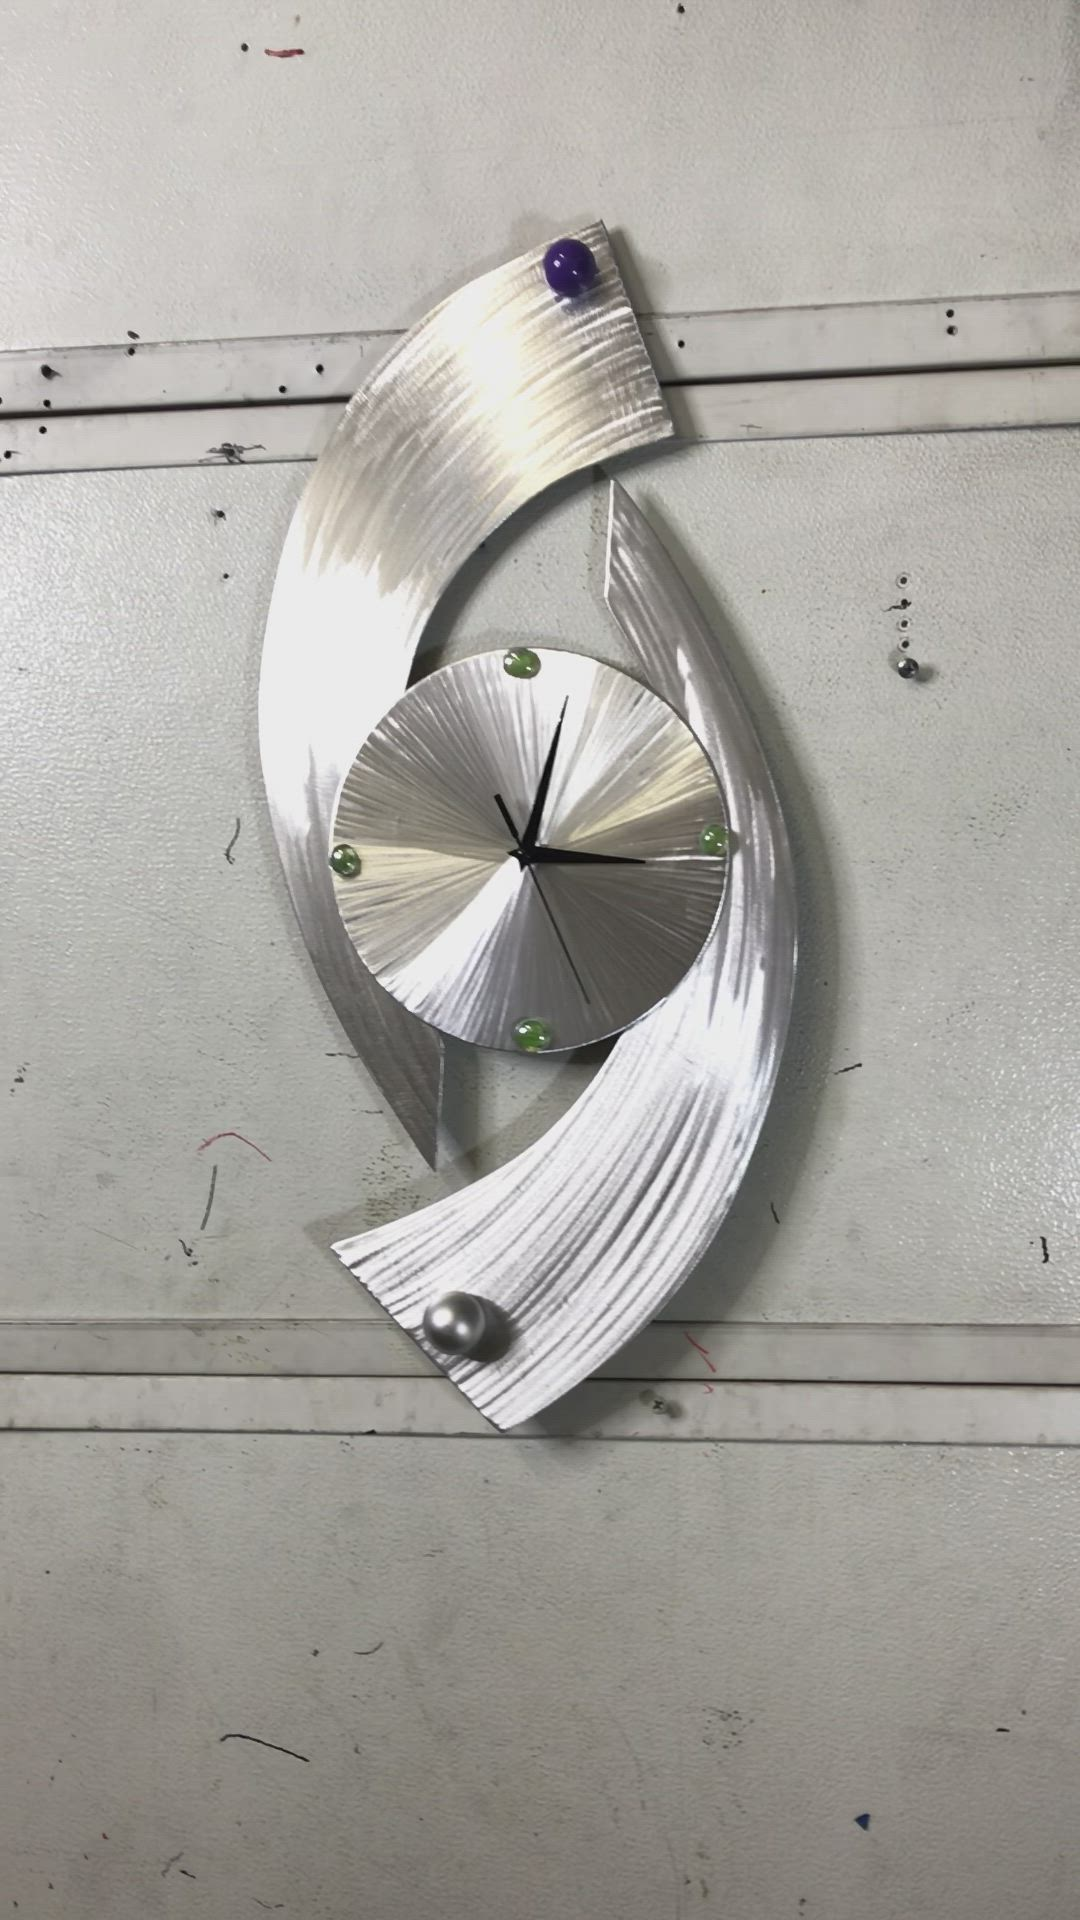 Twistertime Clock By Artist Tony Viscardi Video In 2021 Art Deco Clock Mixed Media Sculpture Contemporary Clocks